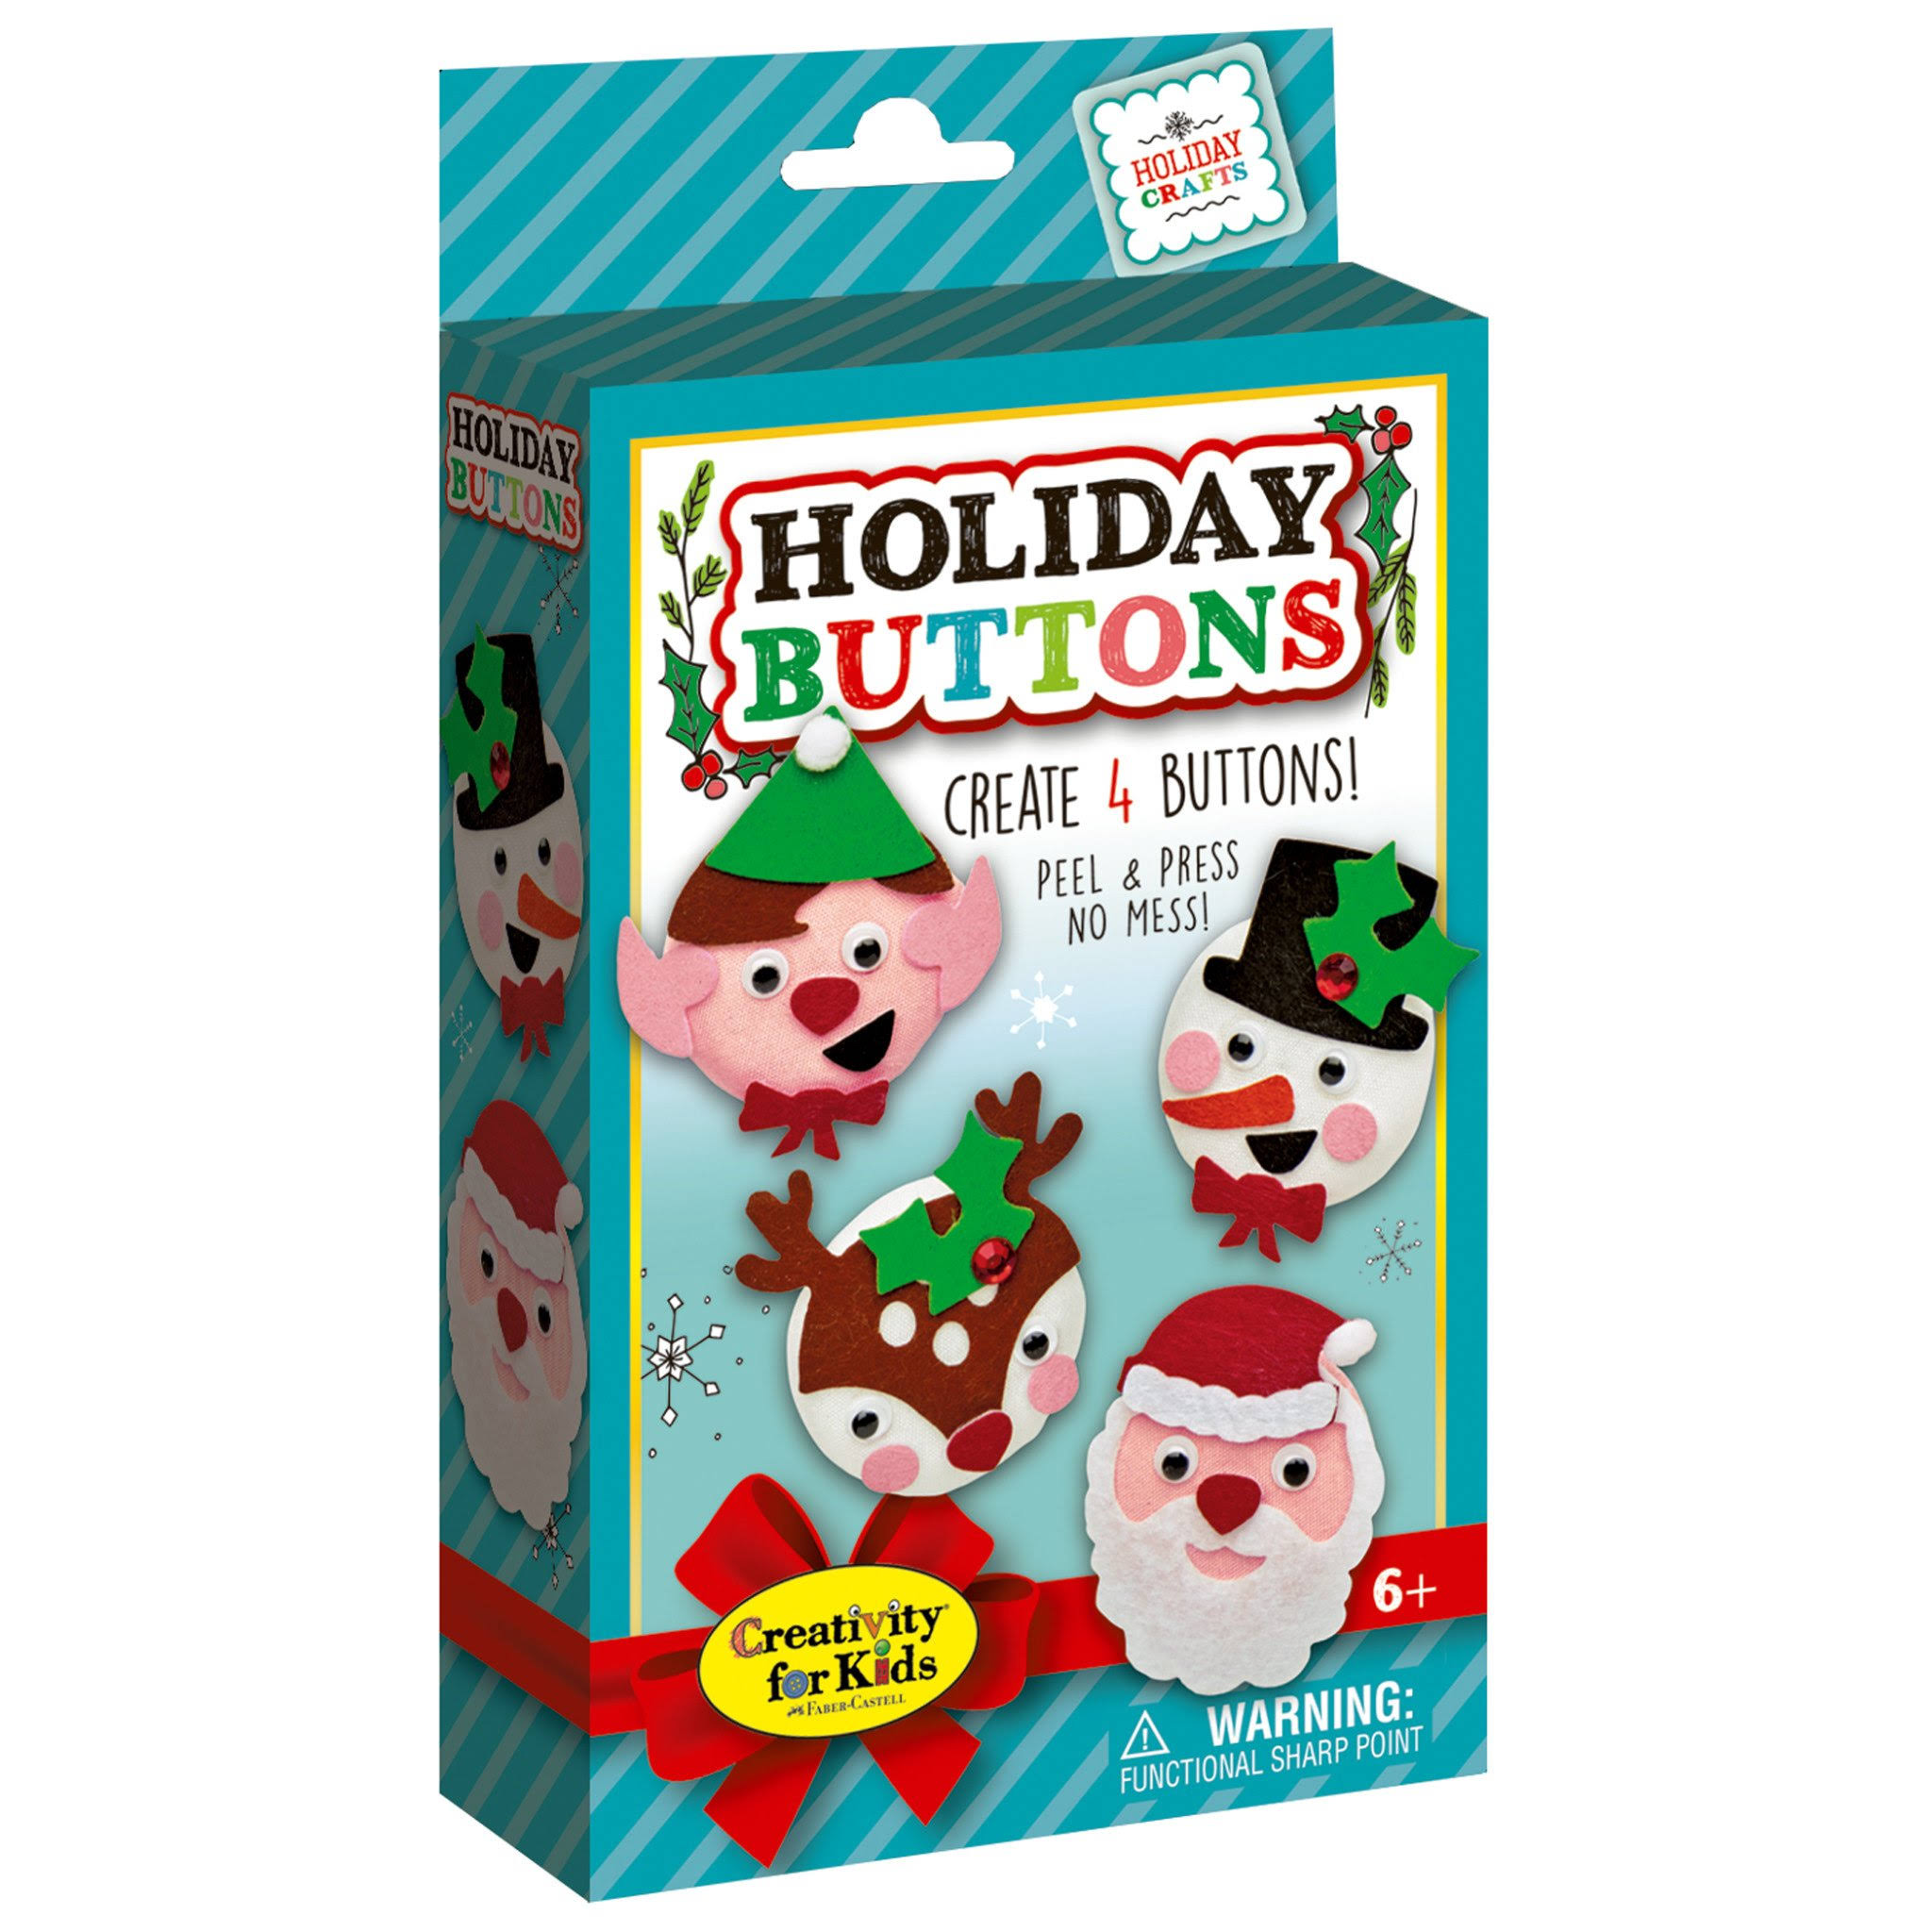 Creativity for Kids Holiday Buttons Mini Kit, Men's